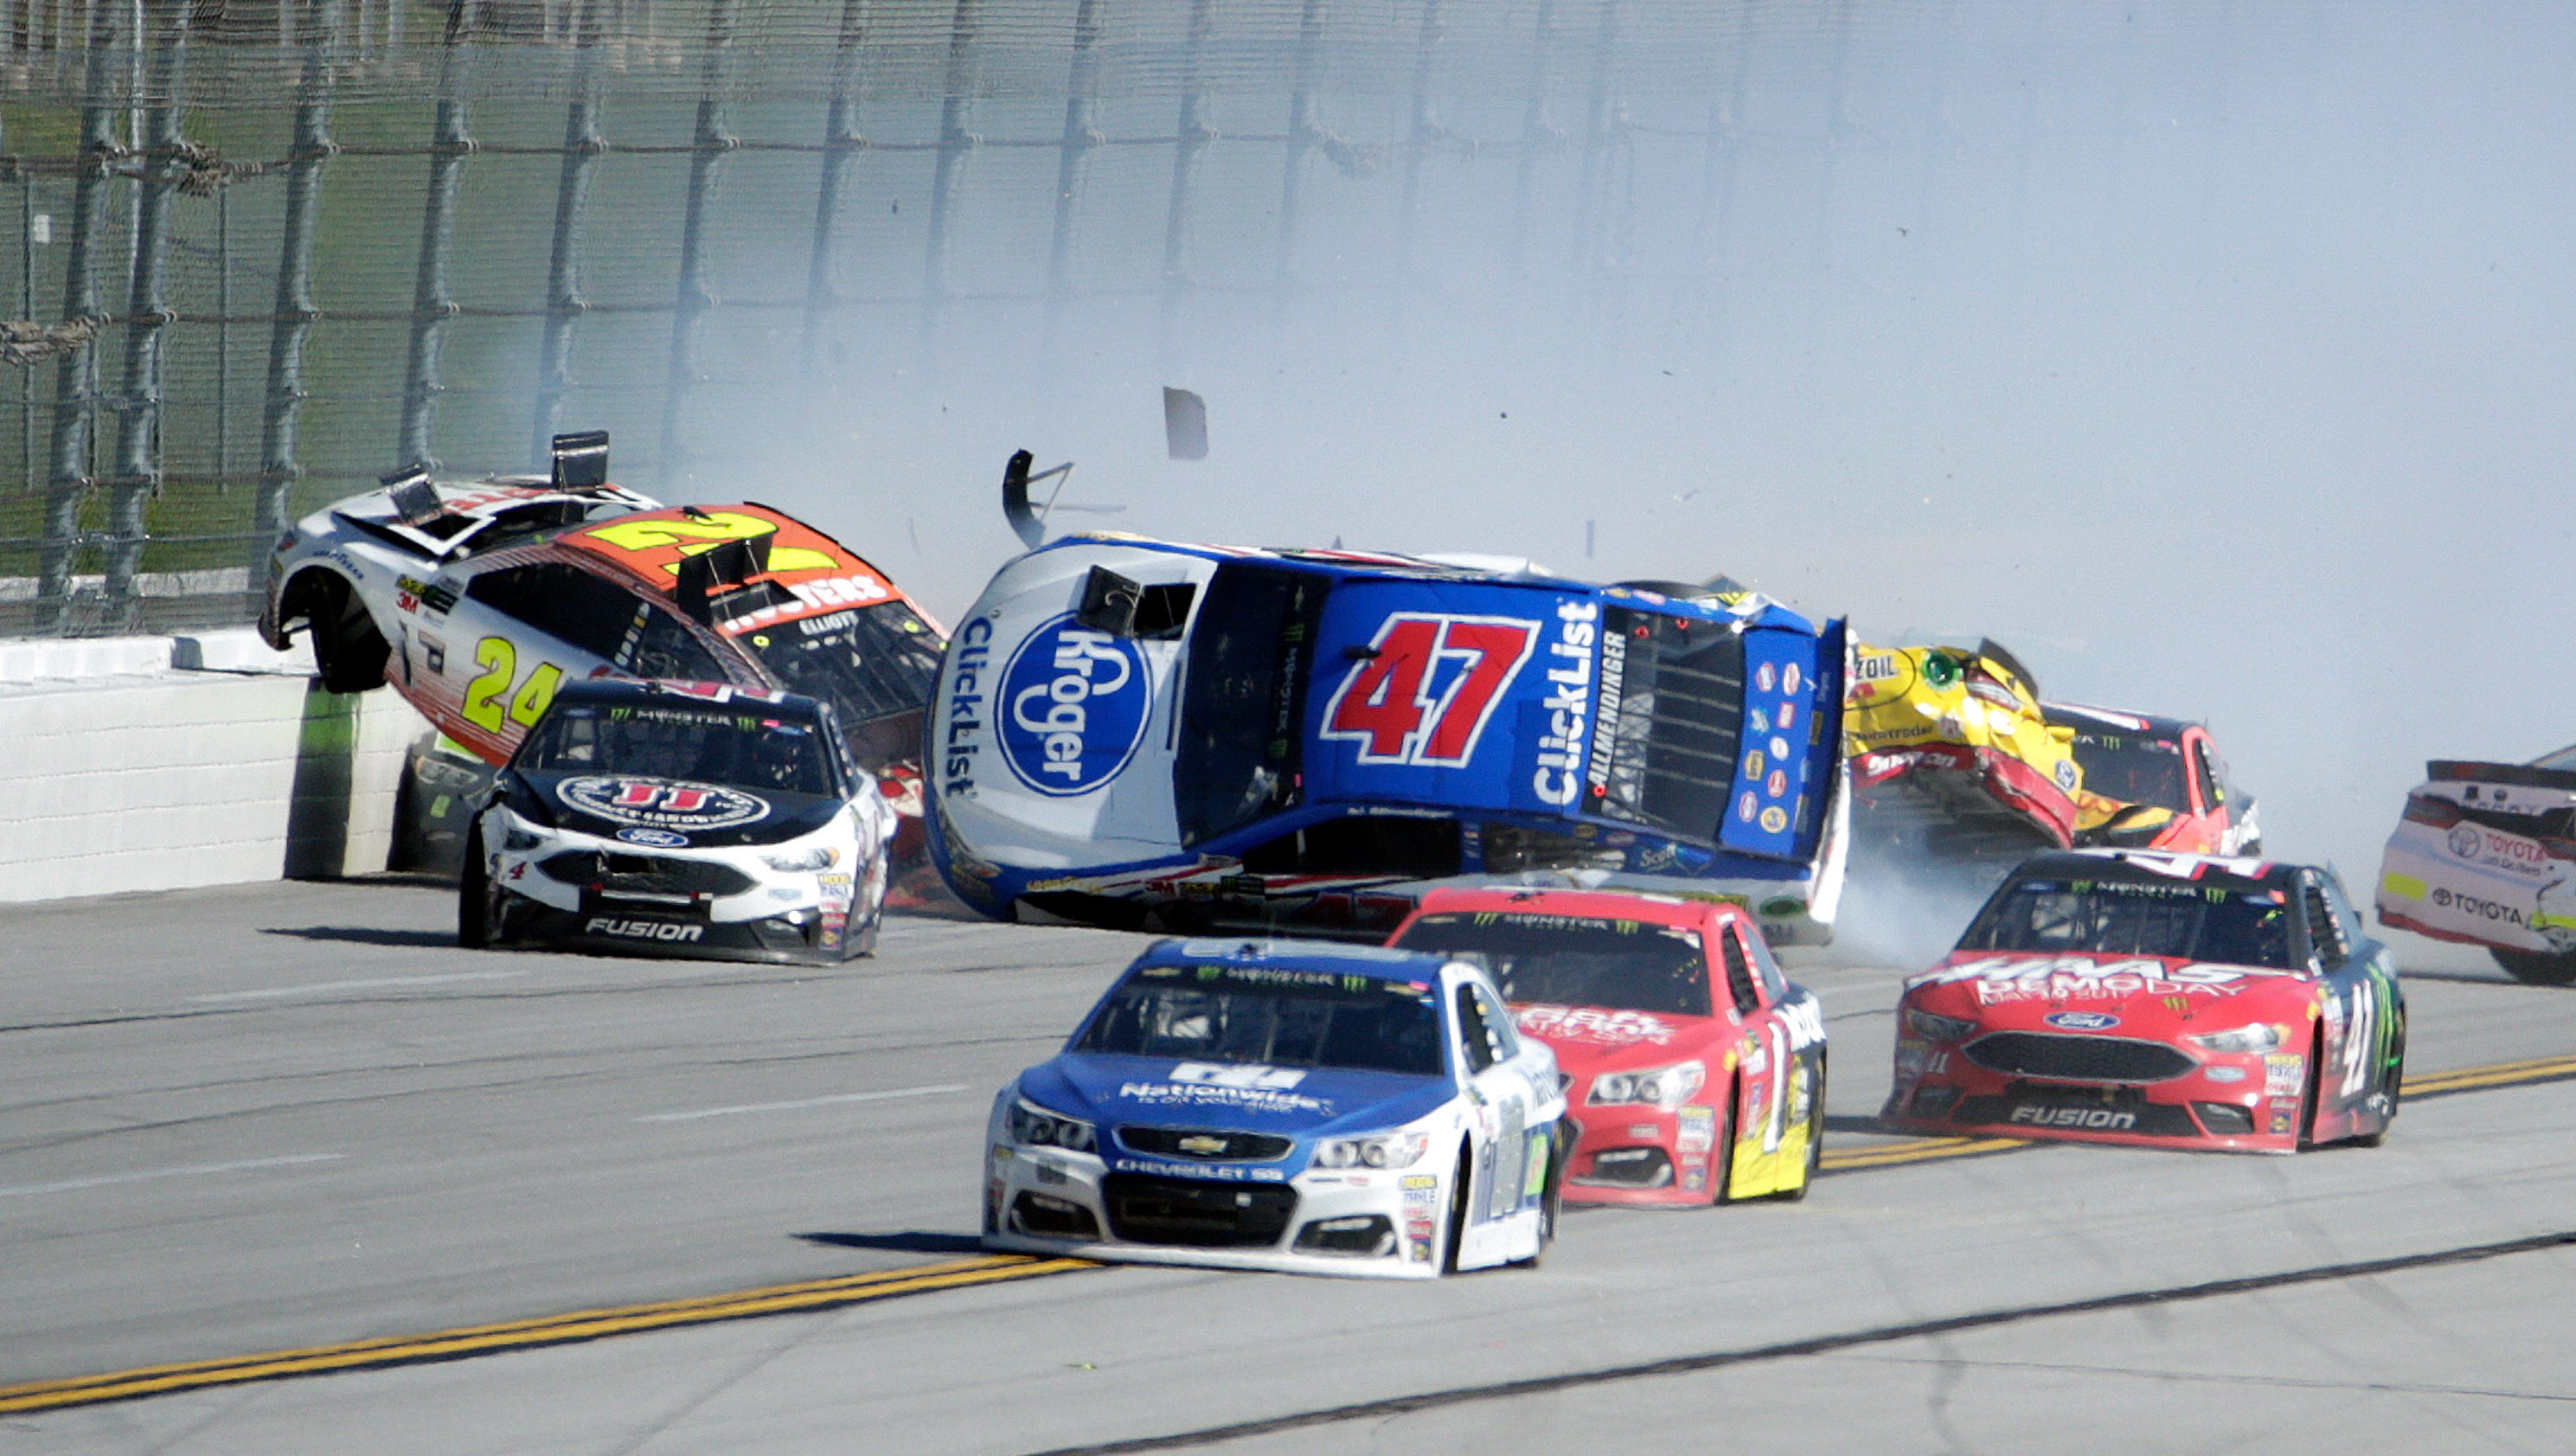 AJ Allmendinger, Chase Elliott trigger massive crash at Talladega